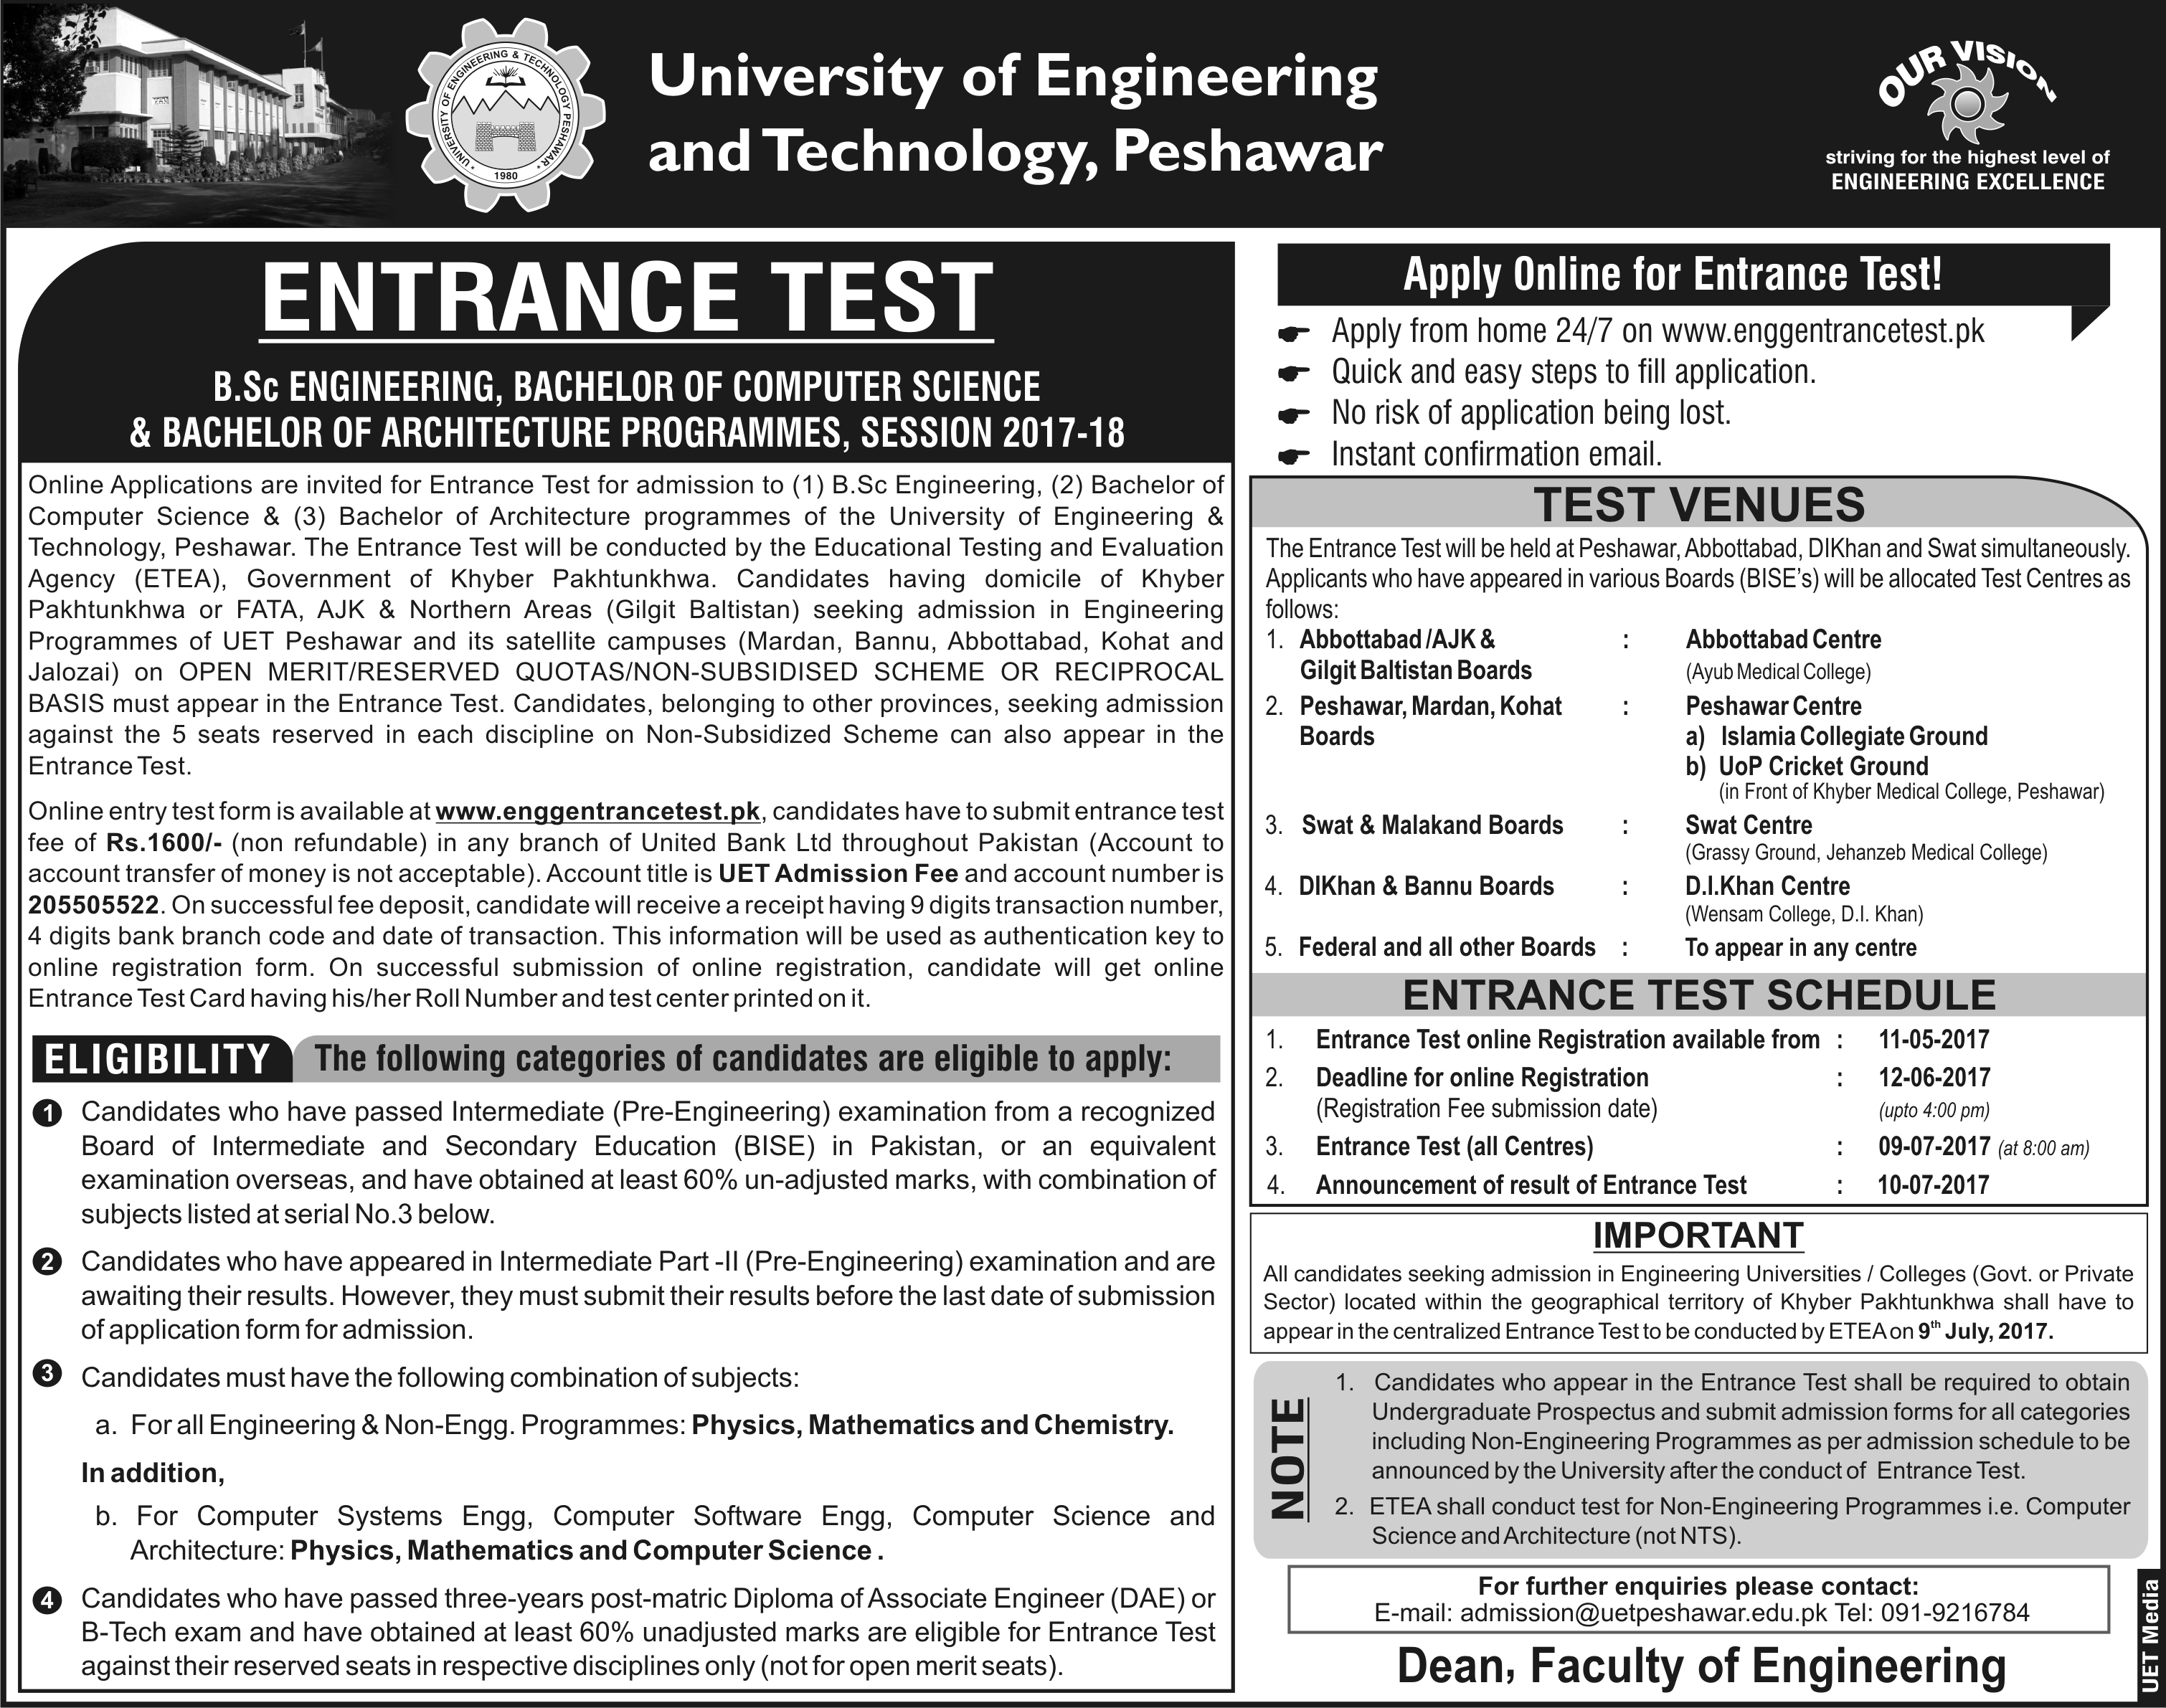 UET Peshawar Entry Test 2017 Online Registration Form Schedule